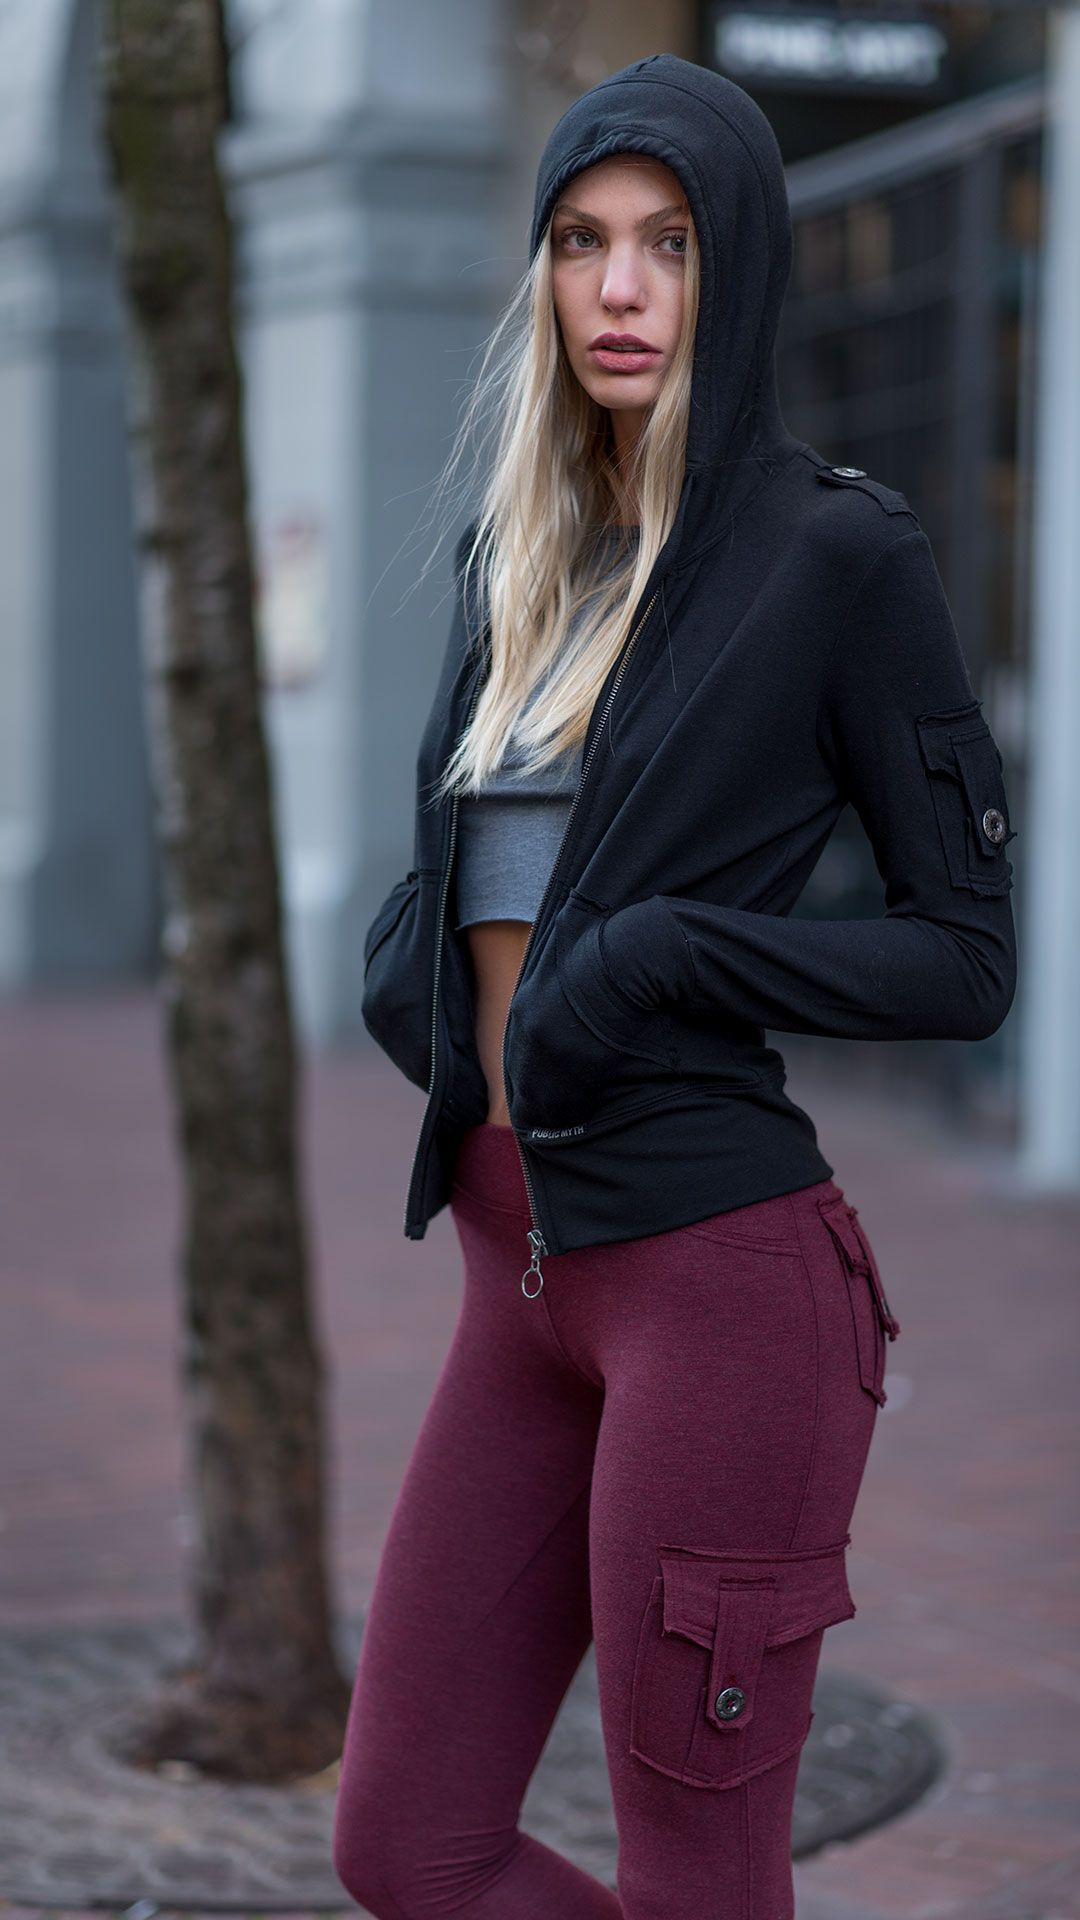 1b53c7a6d40c4 Pictured here is our best-seller, the Bamboo Pocket Leggings, paired with  our Bamboo Crop Top & Bamboo Pocket Hoodie. Bamboo is a natural  eco-friendly ...